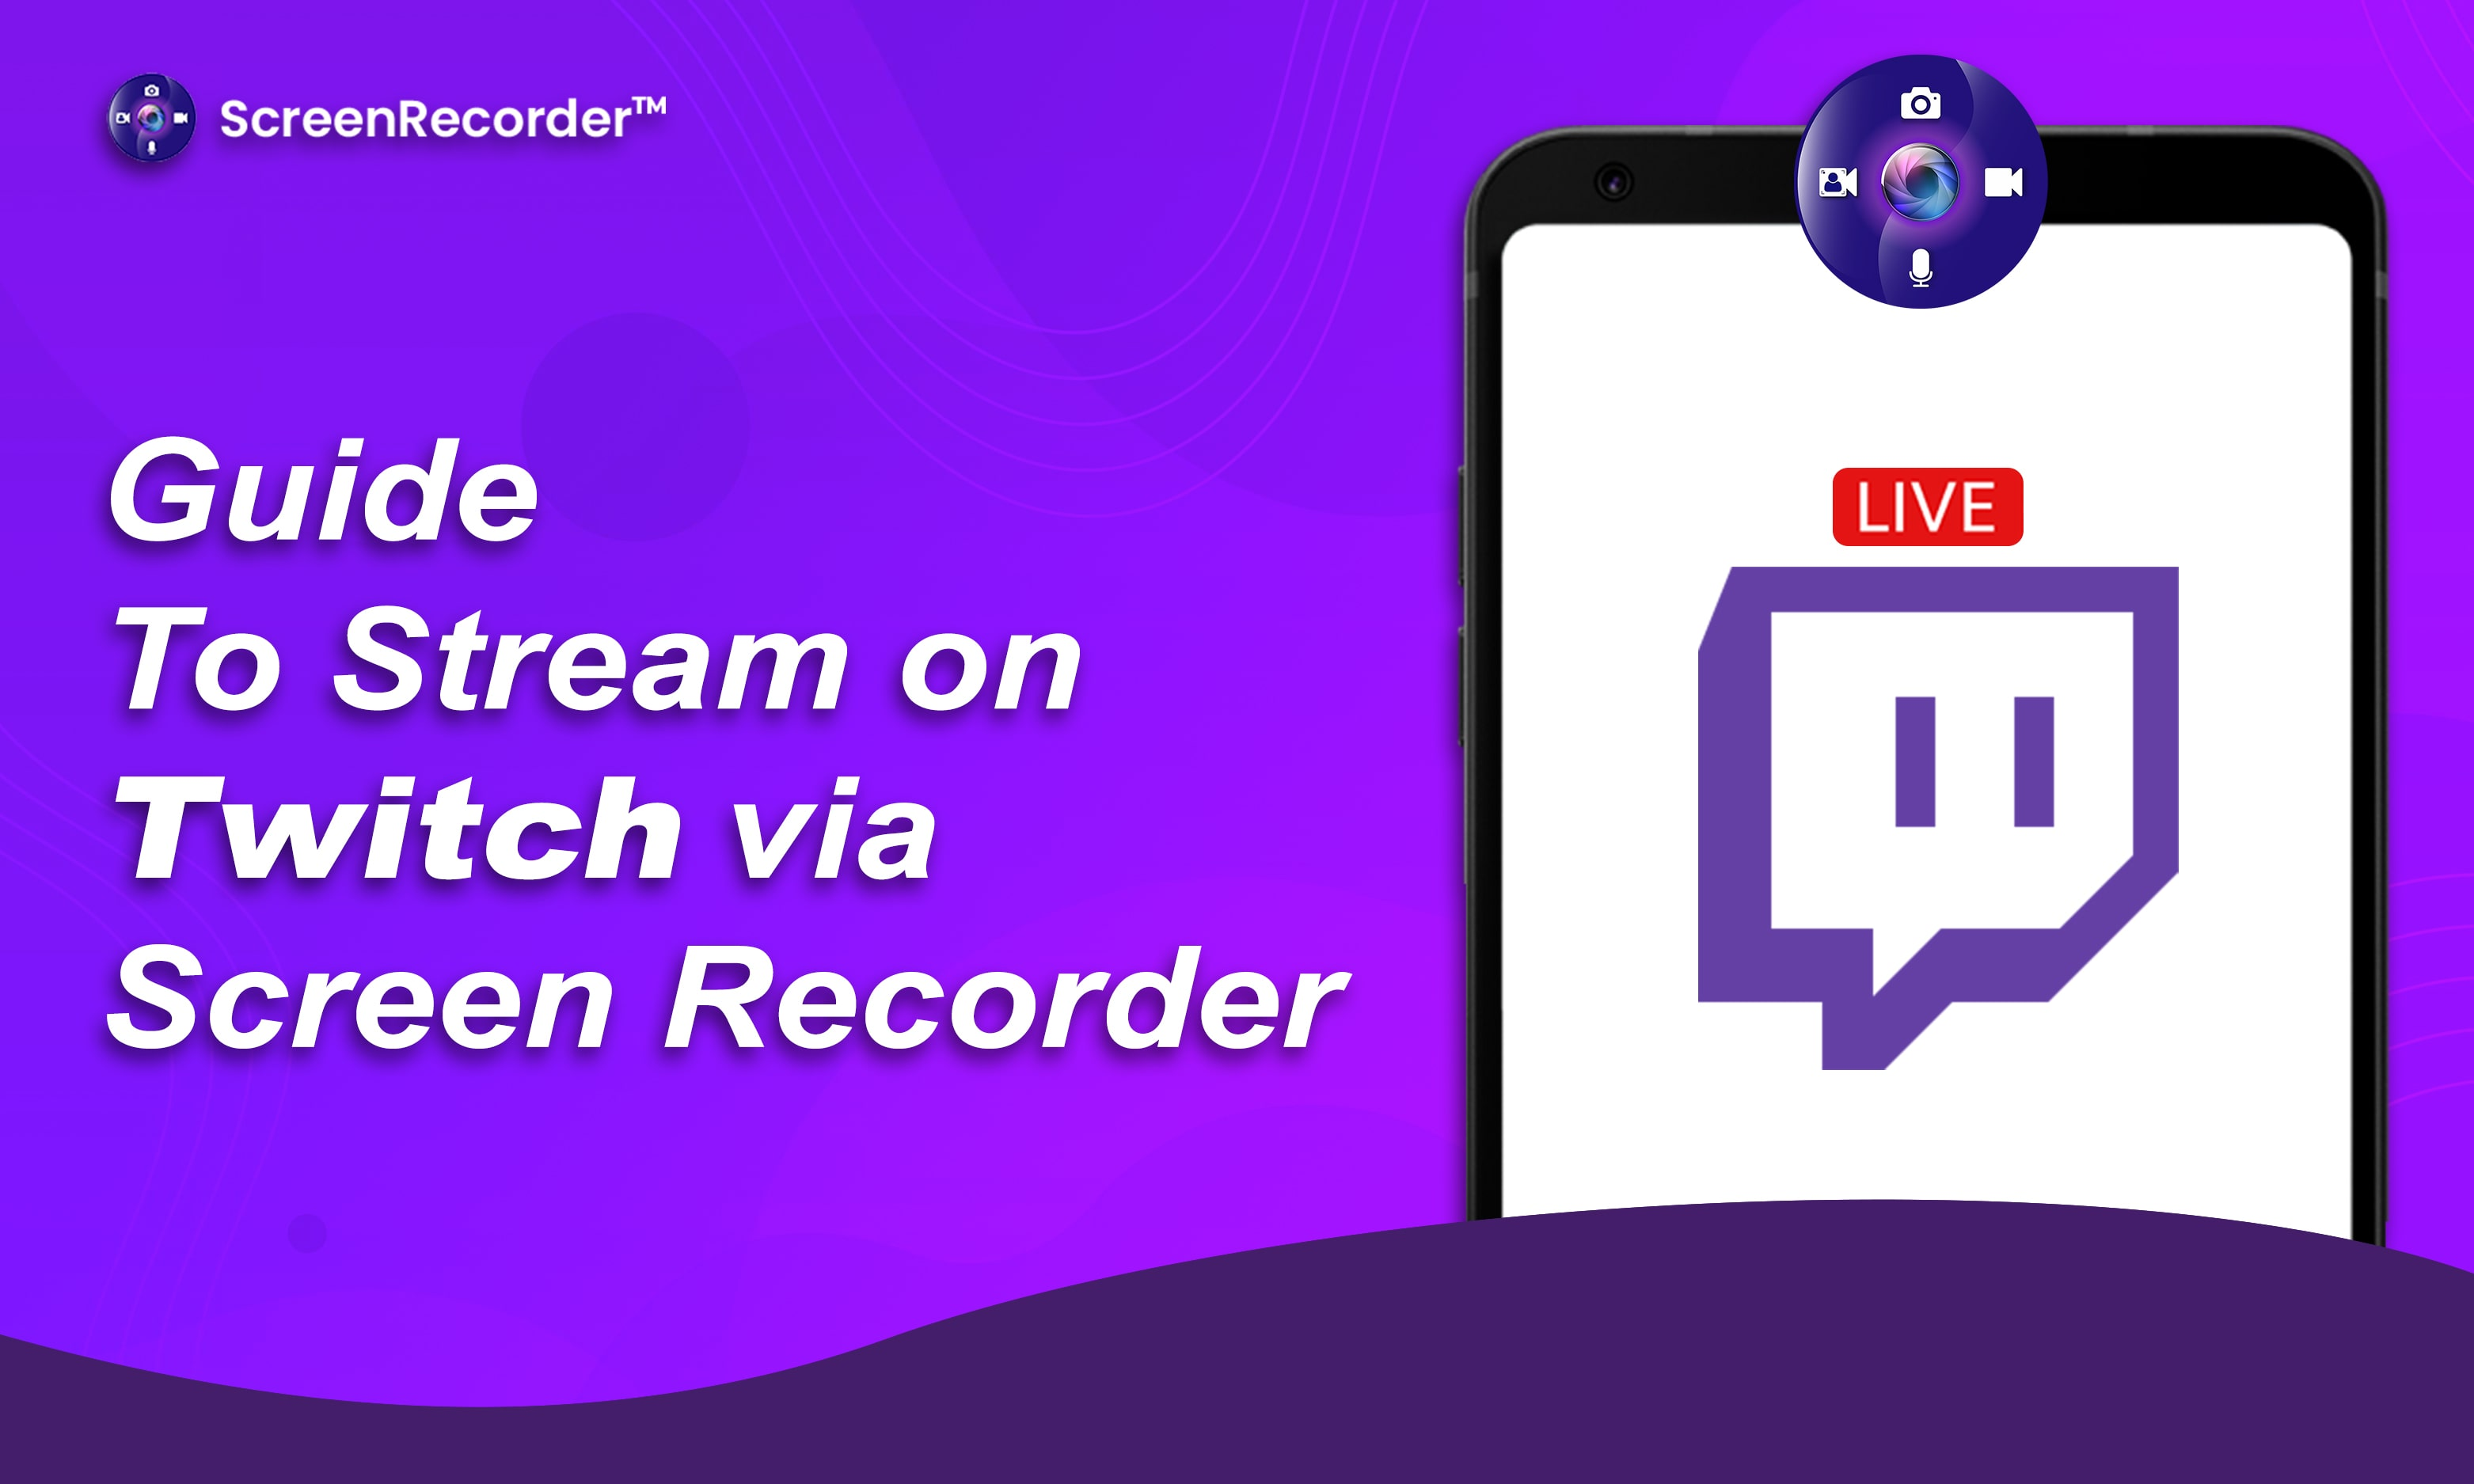 Guide to stream on Twitch via Screen Recorder